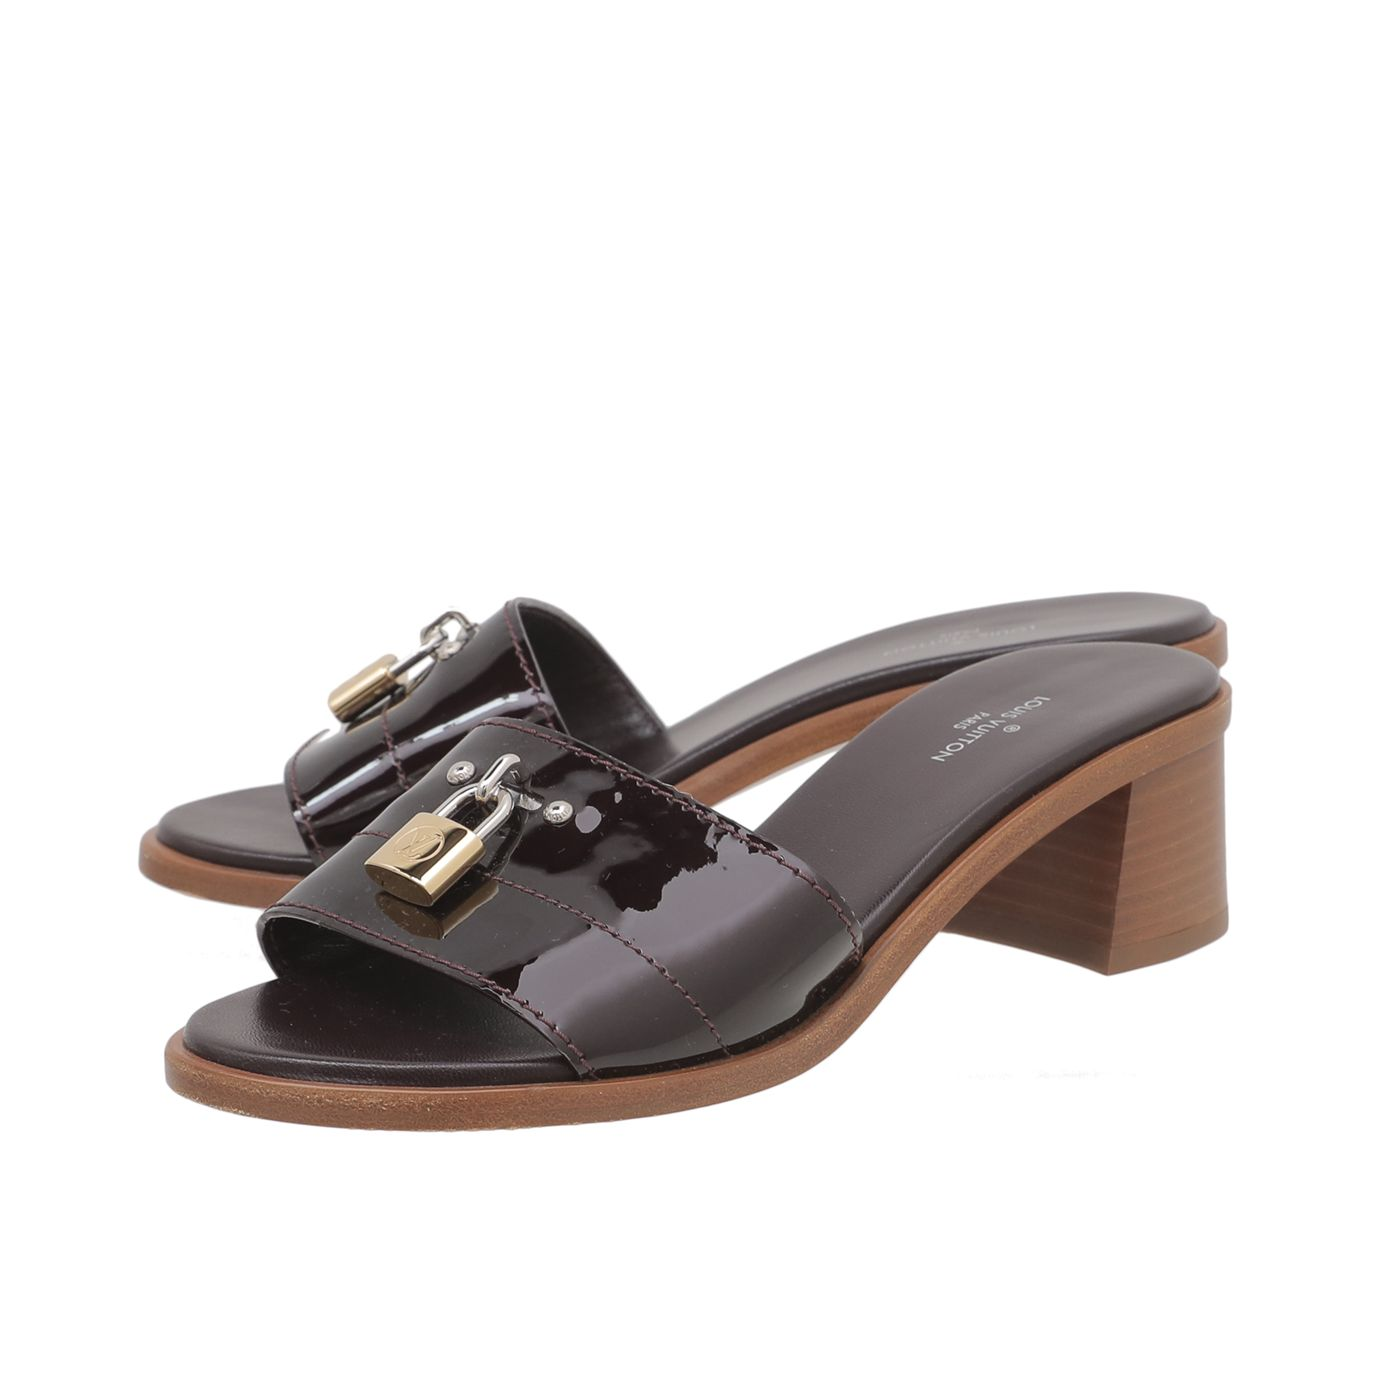 Louis Vuitton Amarante Vernis Lock It Mules 35